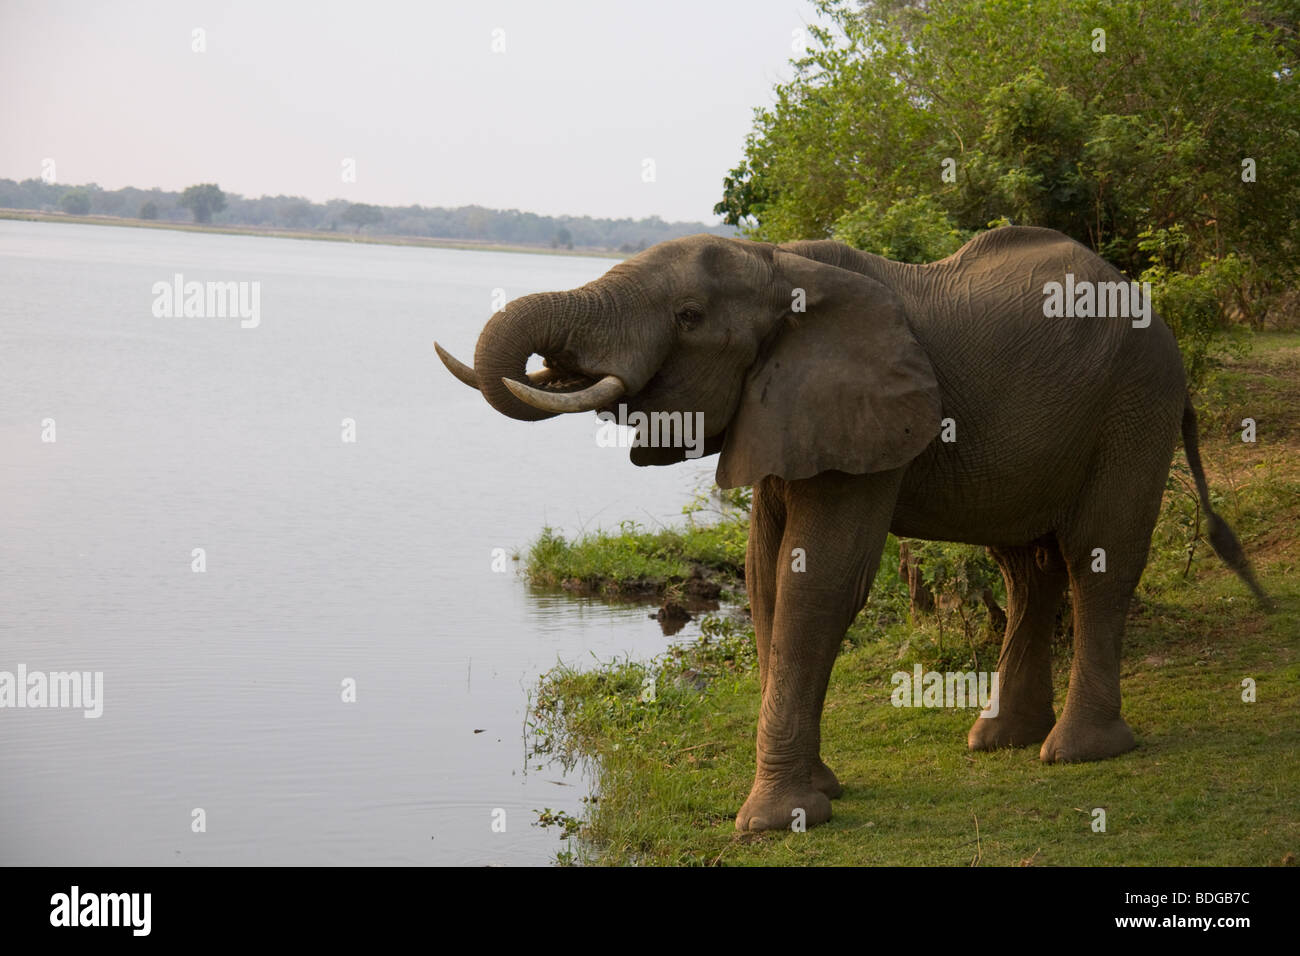 ambia, Tafika Camp on the banks of the Luangwa River, South Luangwa National Park John & Carol Coppinger. Elephant - Stock Image